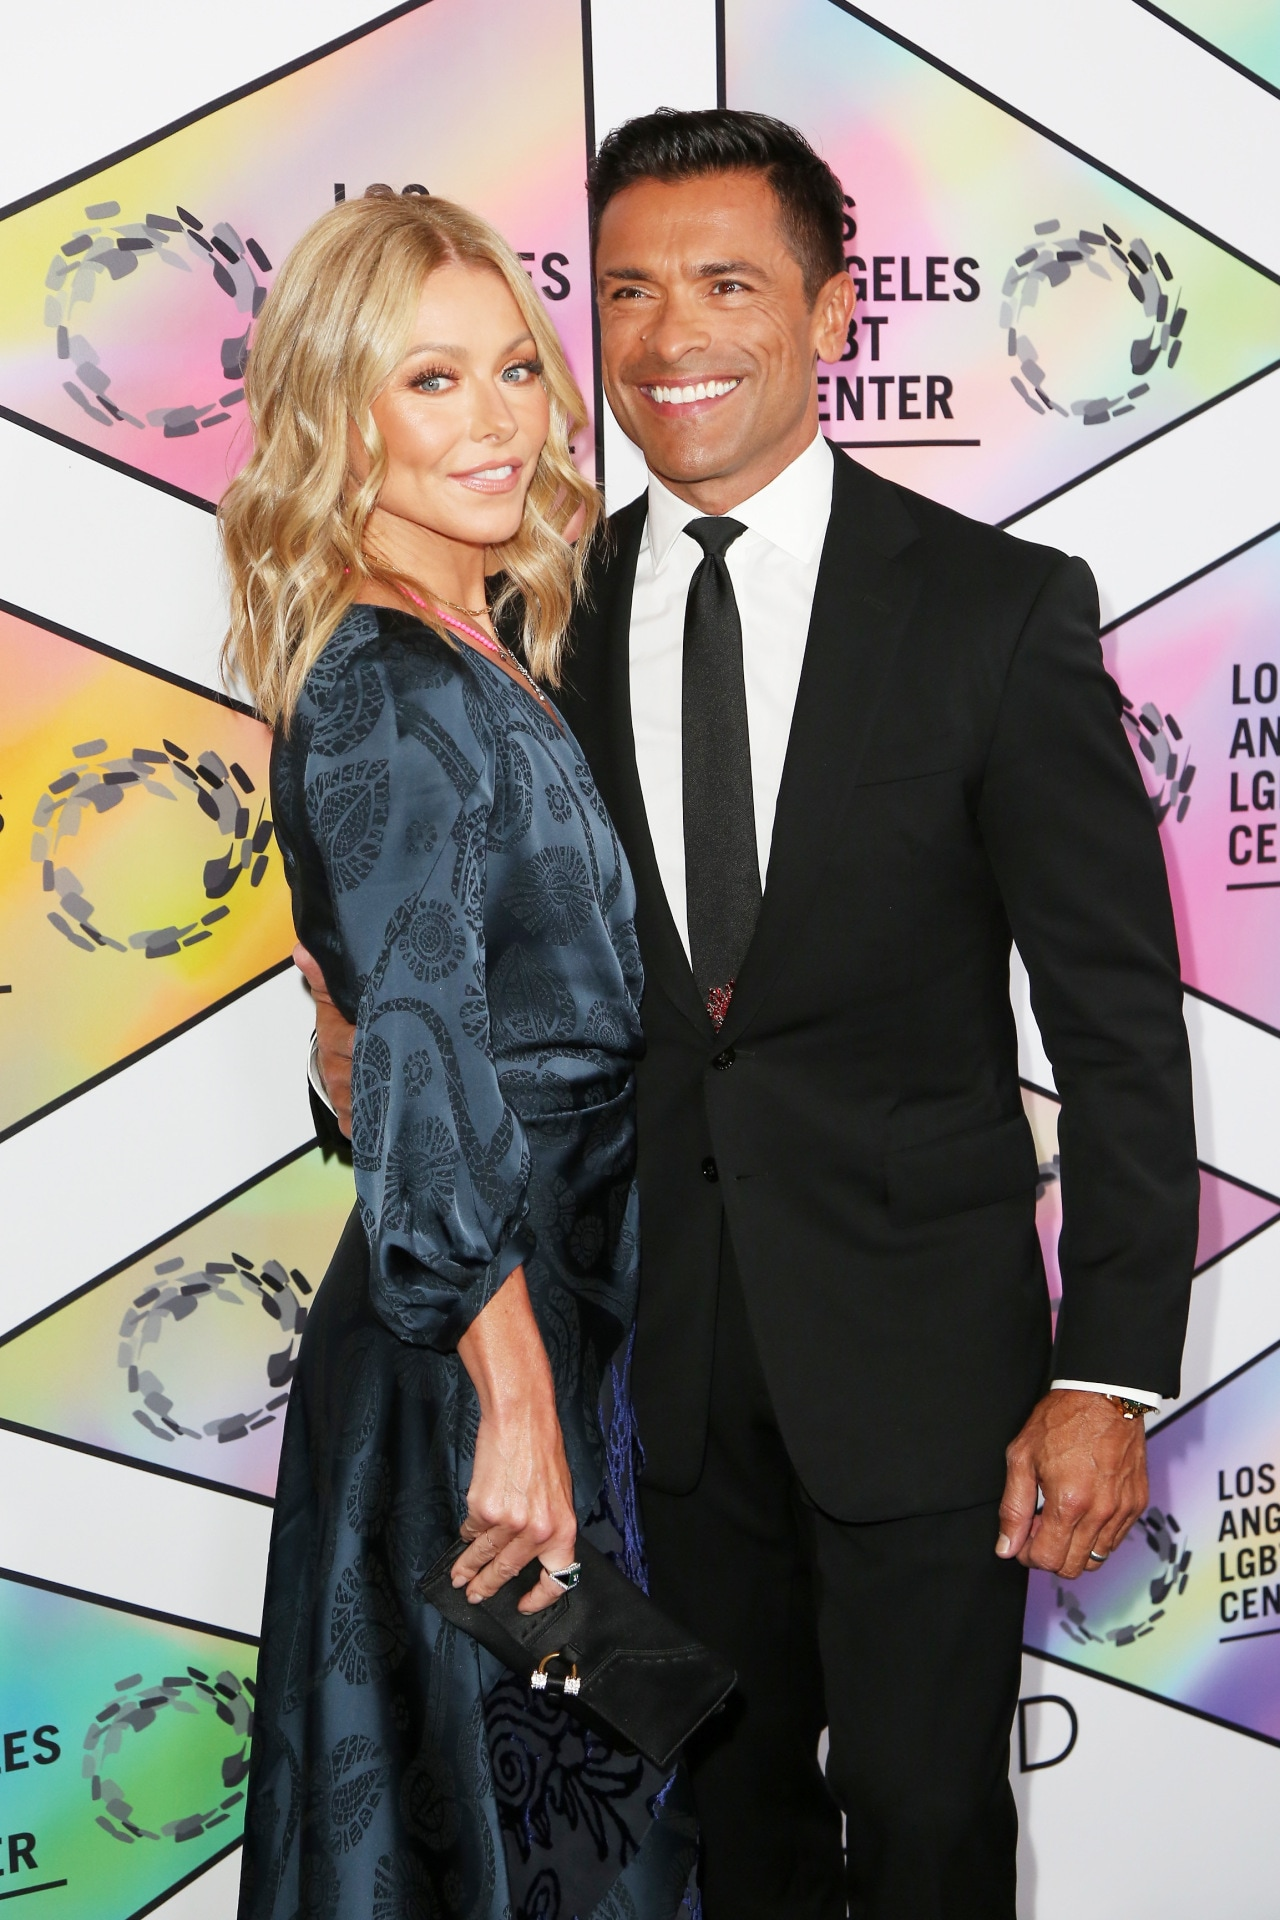 Kelly Ripa will join husband Mark Consuelos on Riverdale as Hiram Lodge's mistress